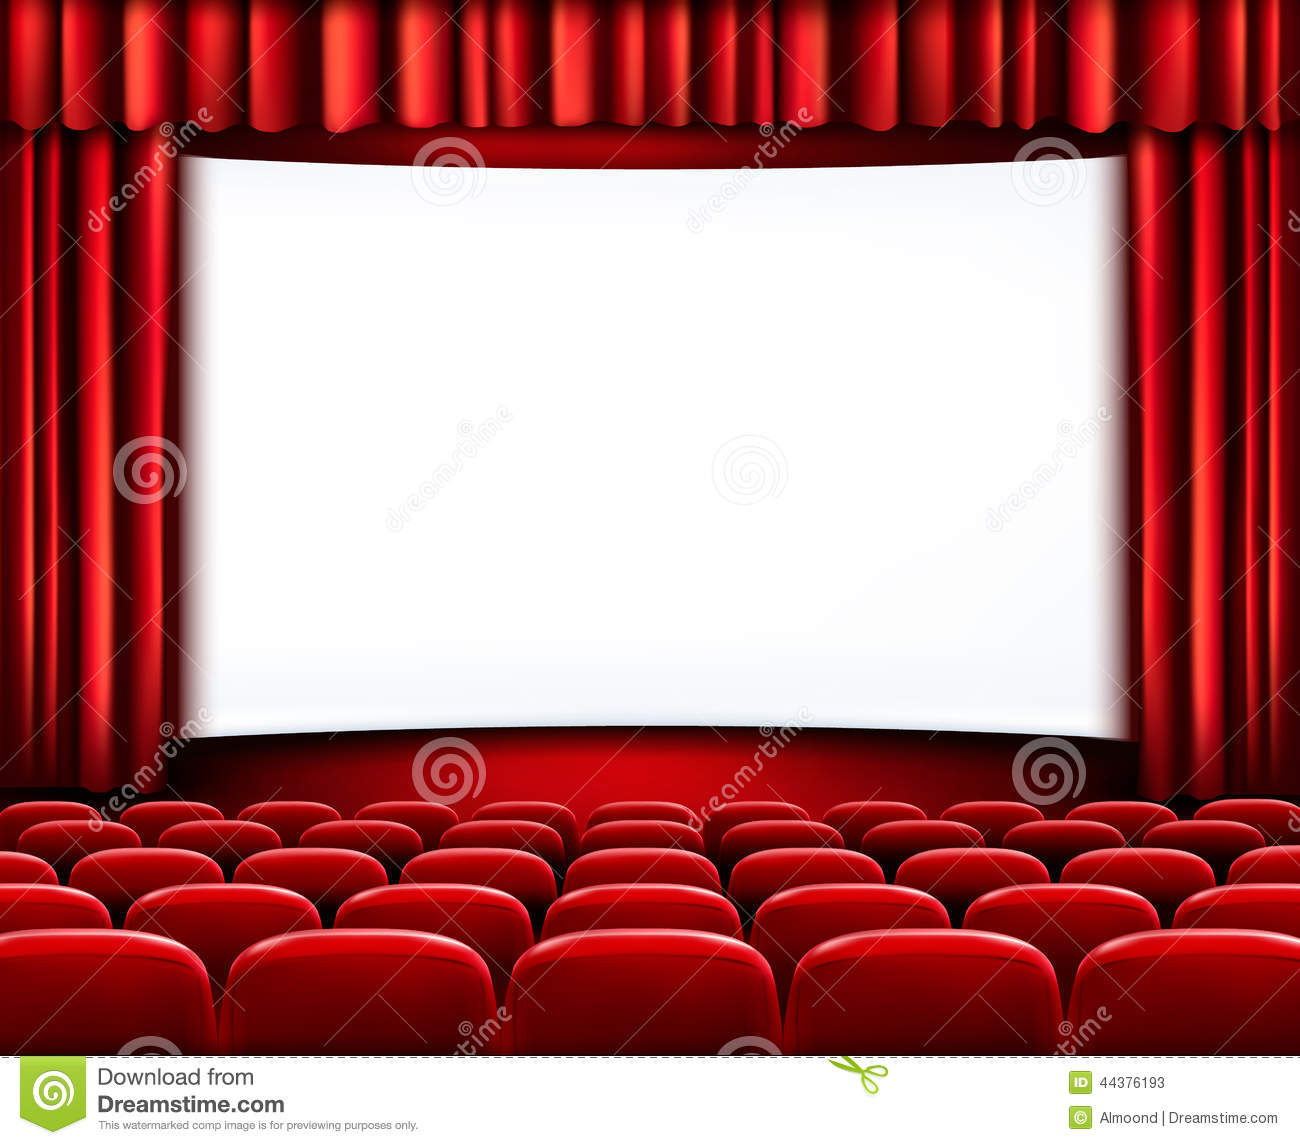 rows of red cinema or theater seats stock vector image